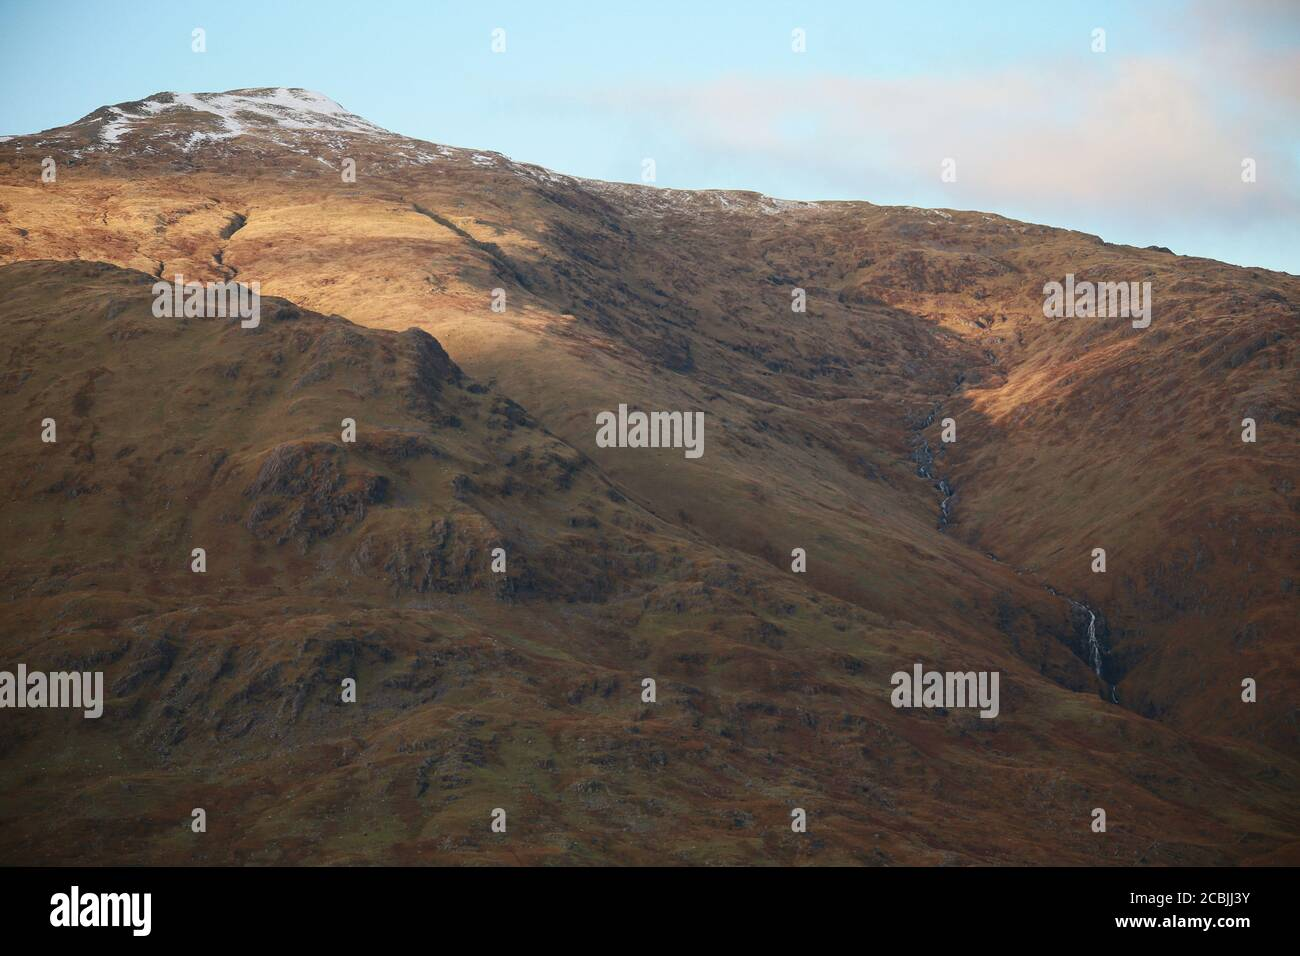 Scottish Mountains show their beauty in the wilderness. Stock Photo